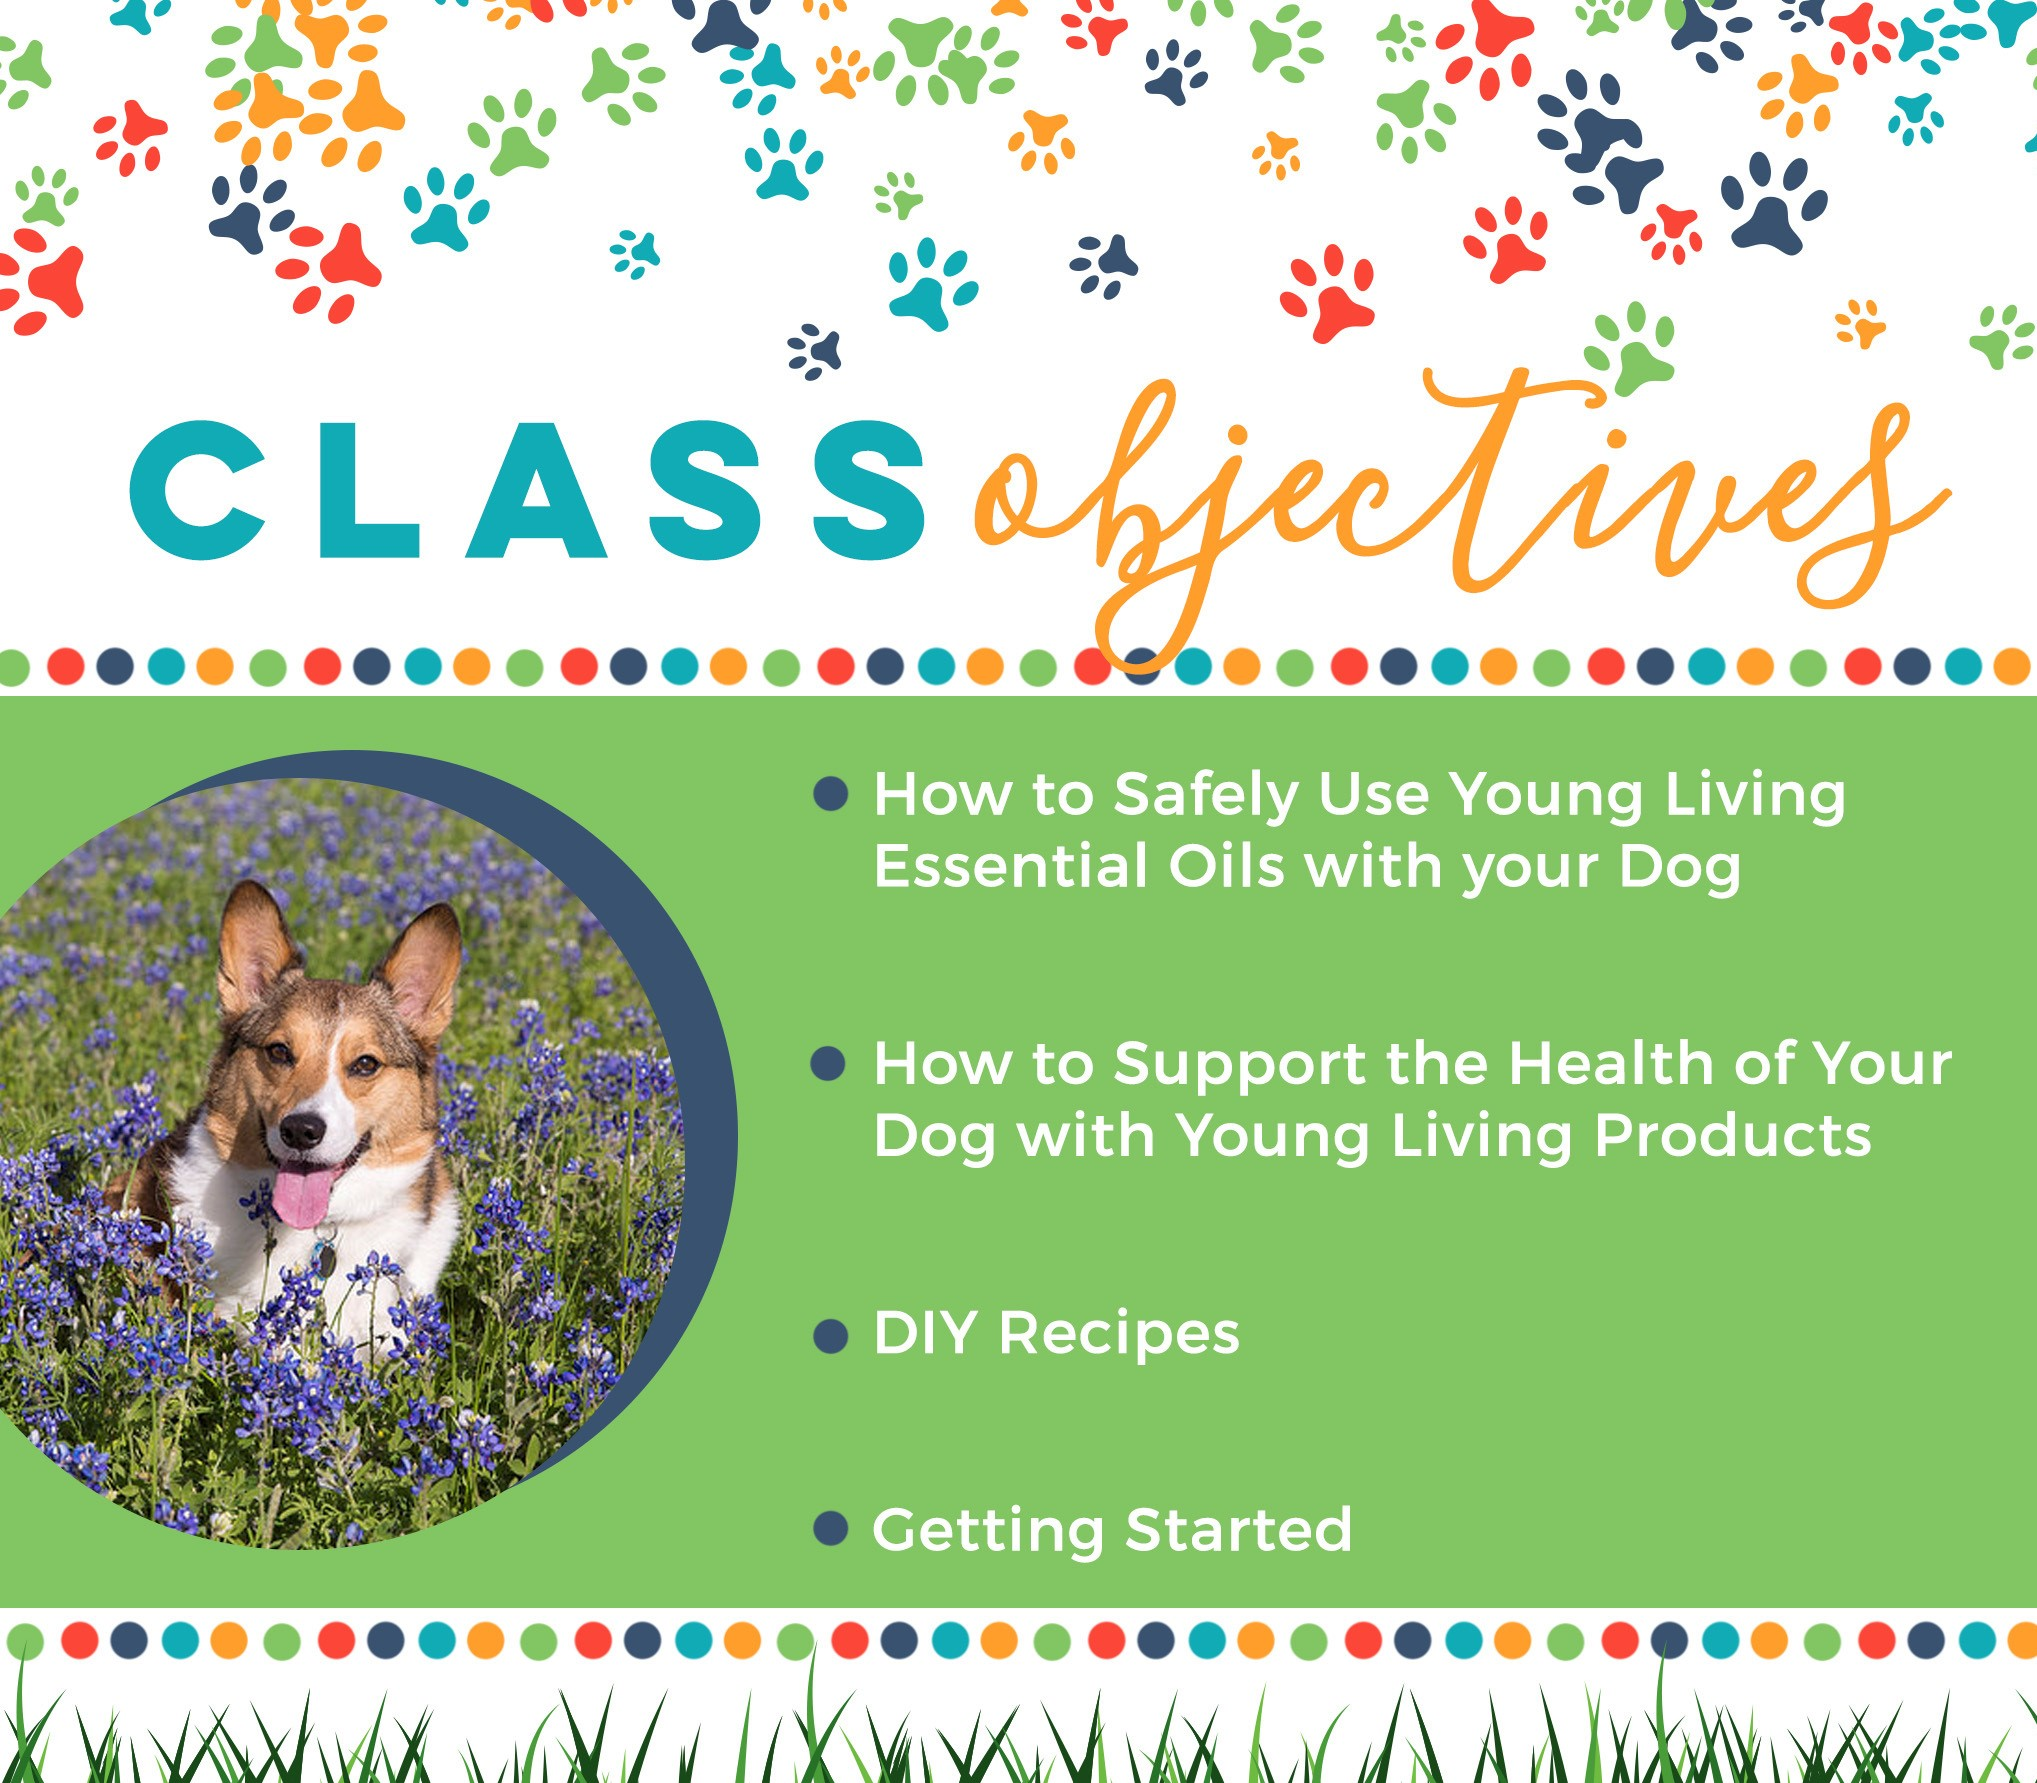 Which oils are safe to use?  How much can I apply?  Should I diffuse or apply topically?  These are our most asked questions when it comes to using essential oils on our dogs!   Whether you're a beginner or an expert, here are a few things to keep in mind:    * Most animals are more sensitive than humans to essential oils.  * Start by diluting heavily and use in moderation.  * Every animal is different, so carefully observe how each animal responds to the oils. Use common sense and good judgment as you try different methods.  * Take special care to not get essential oils in an animal's eyes.  * Avoid using high-phenol oils such as Oregano and Thyme undiluted with any animal.